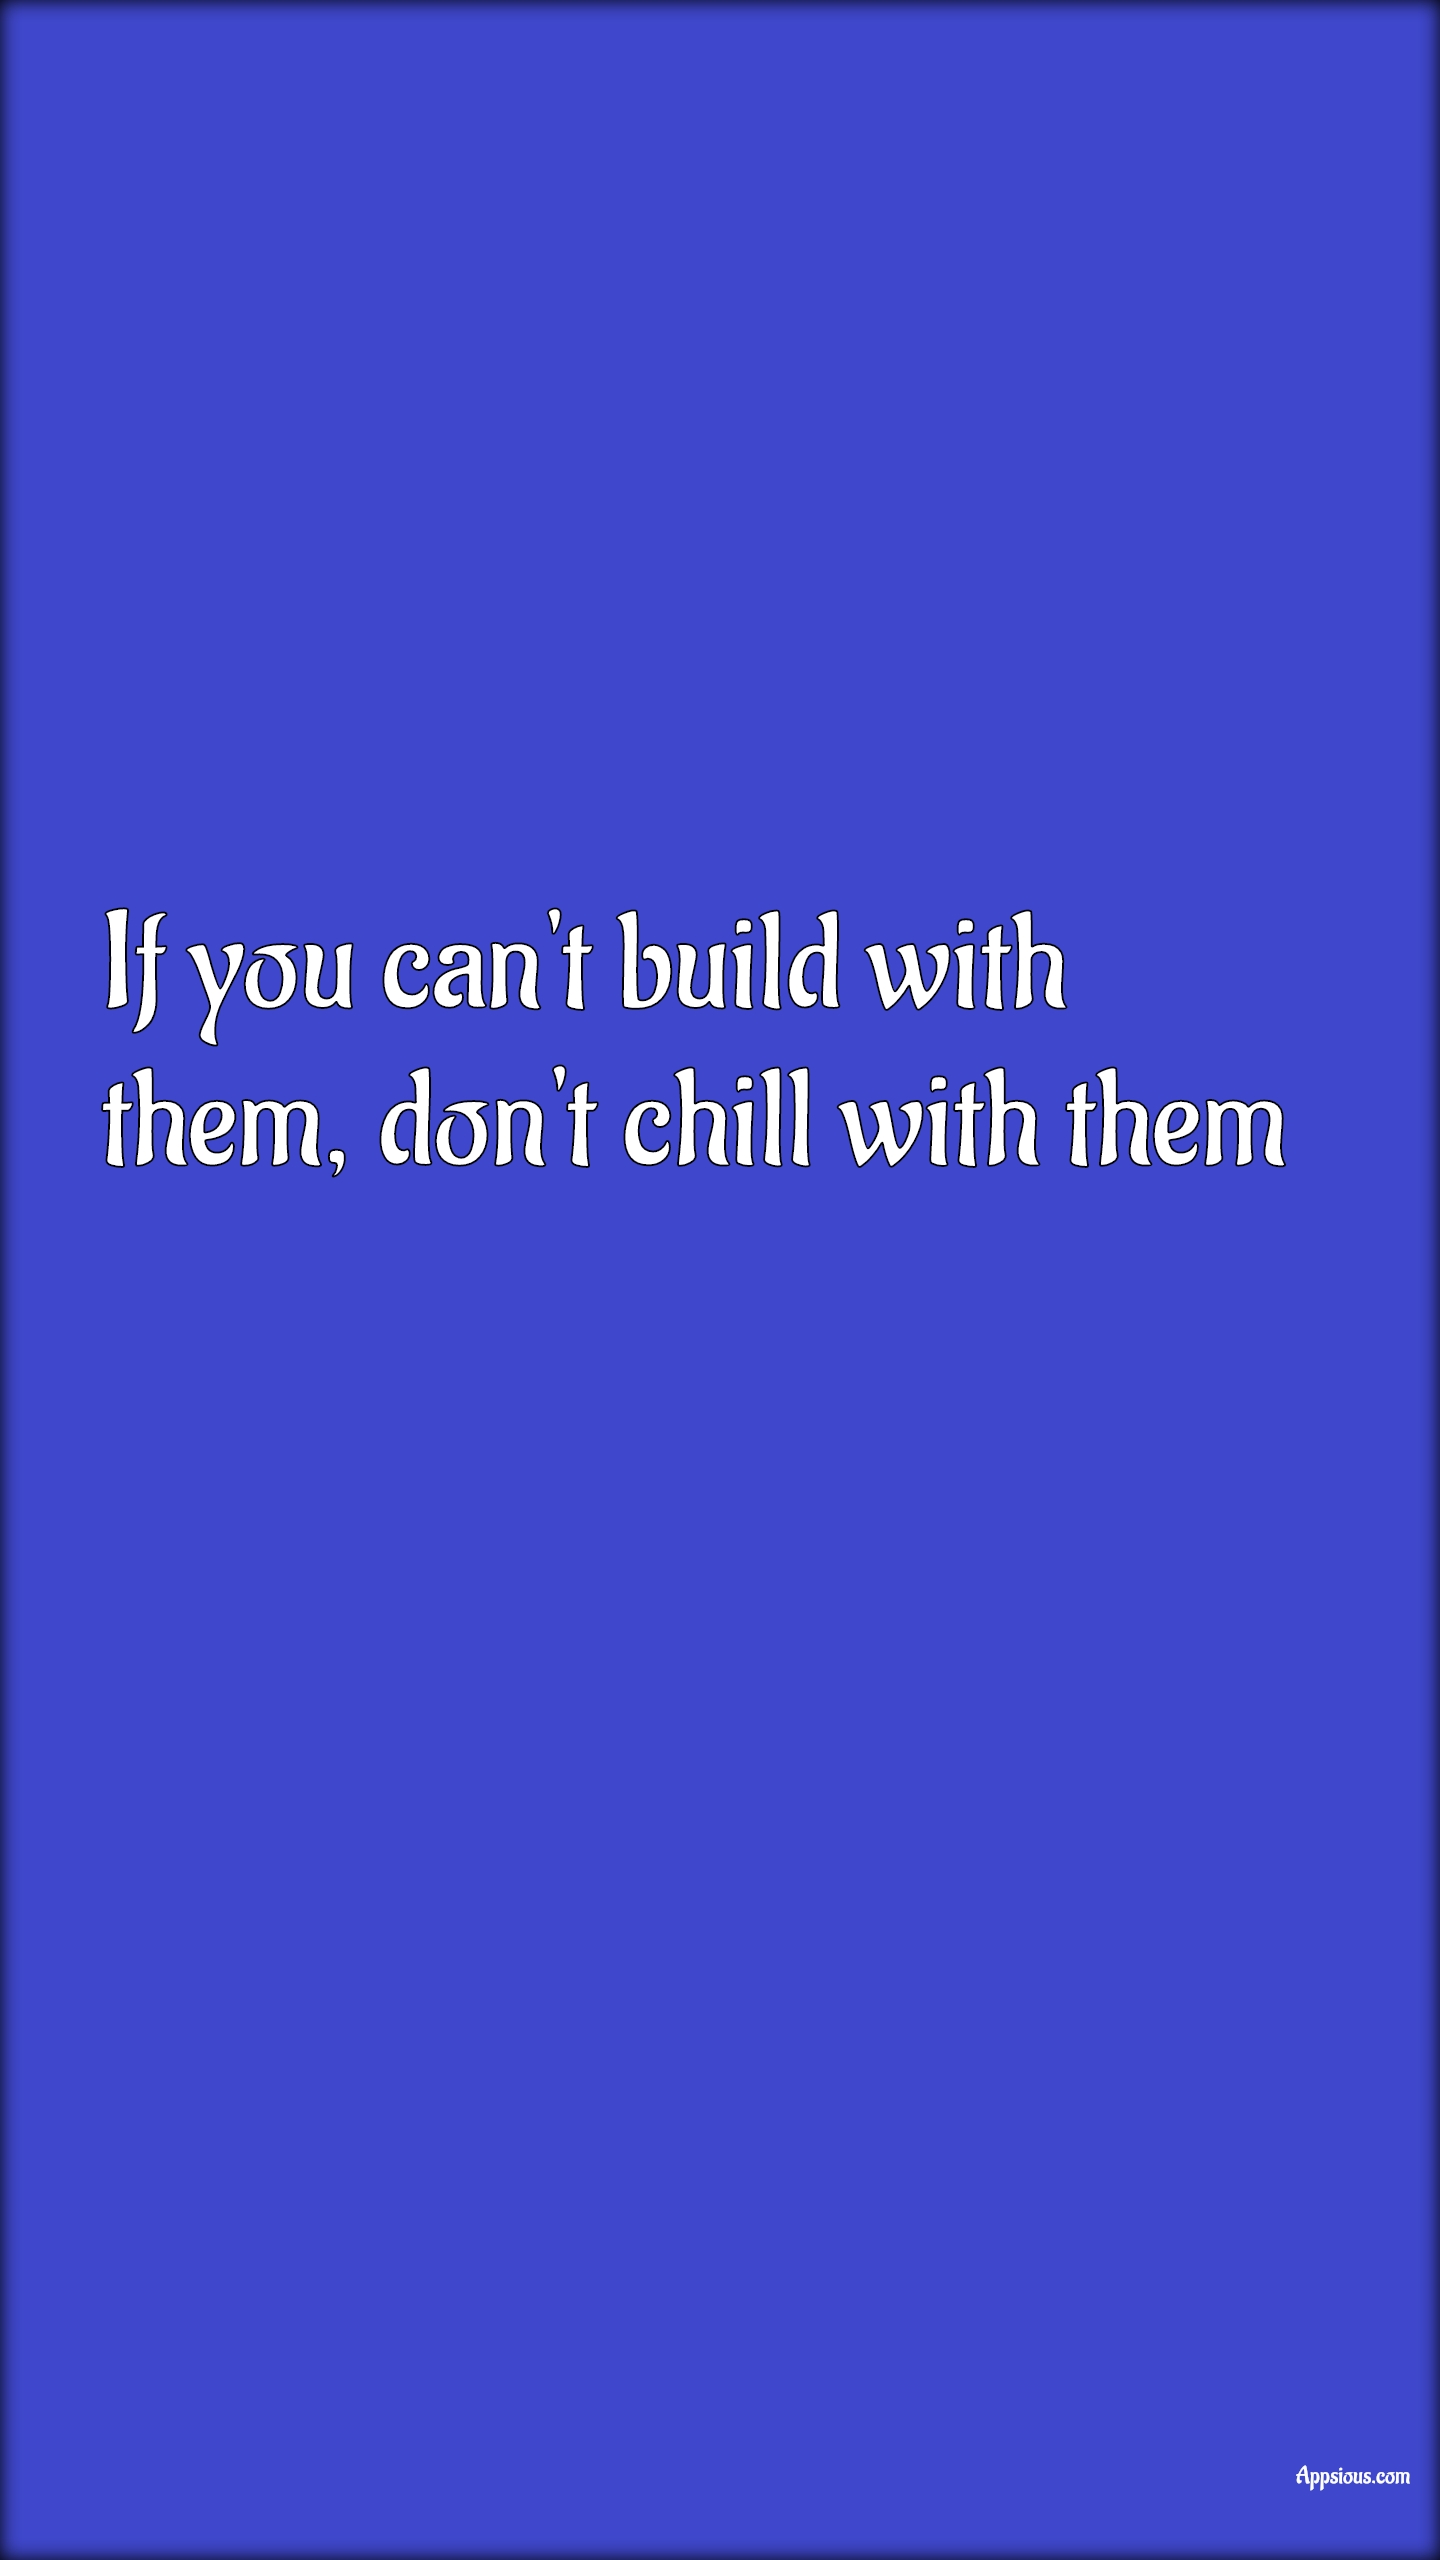 If you can't build with them, don't chill with them